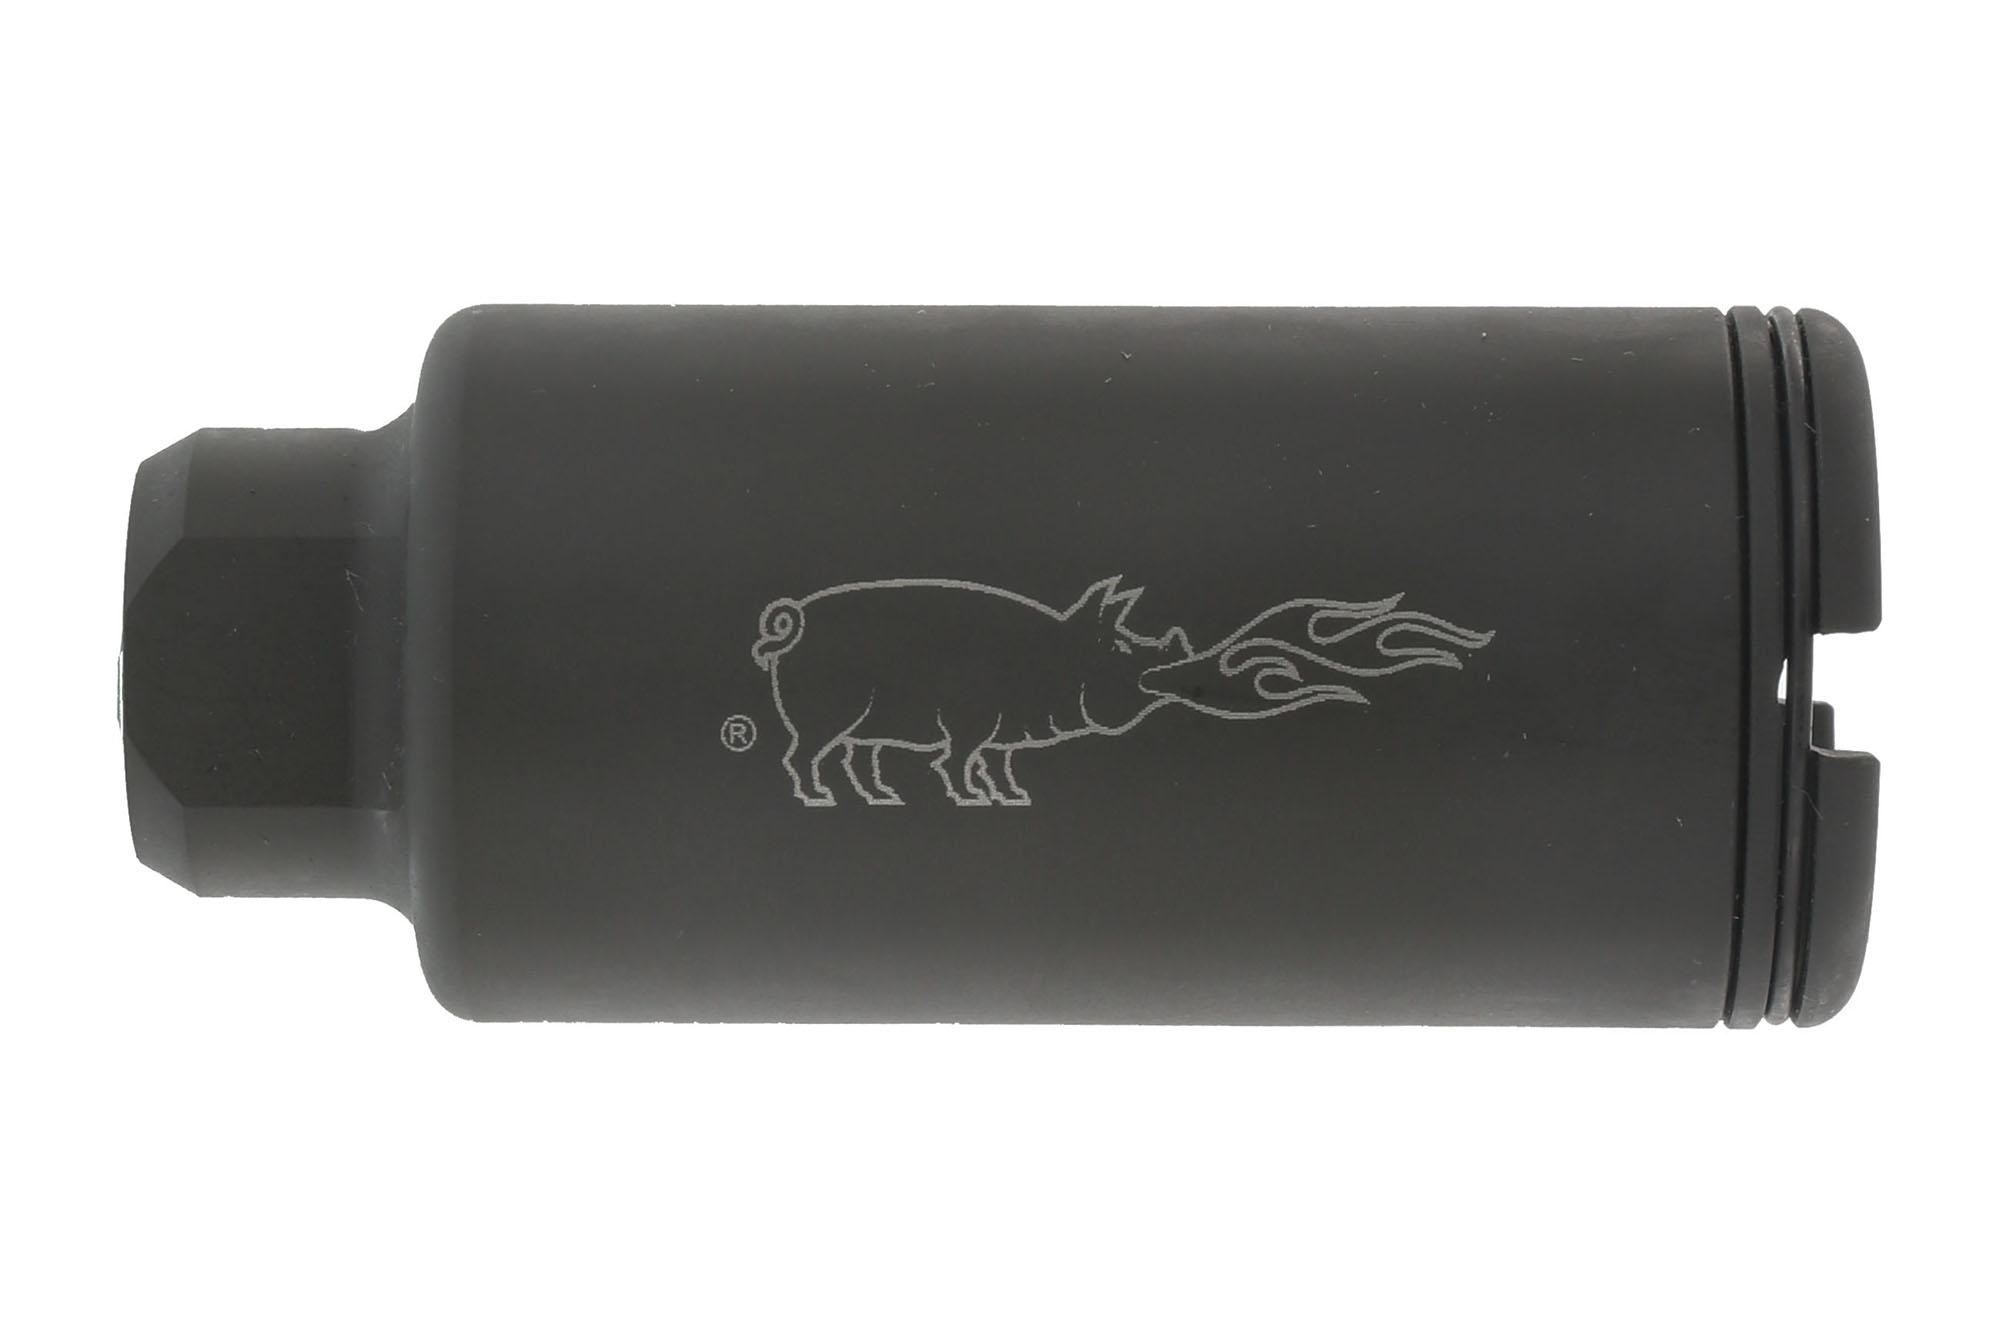 Noveske KX3 Flash Suppressor 5/8x24 7.62MM